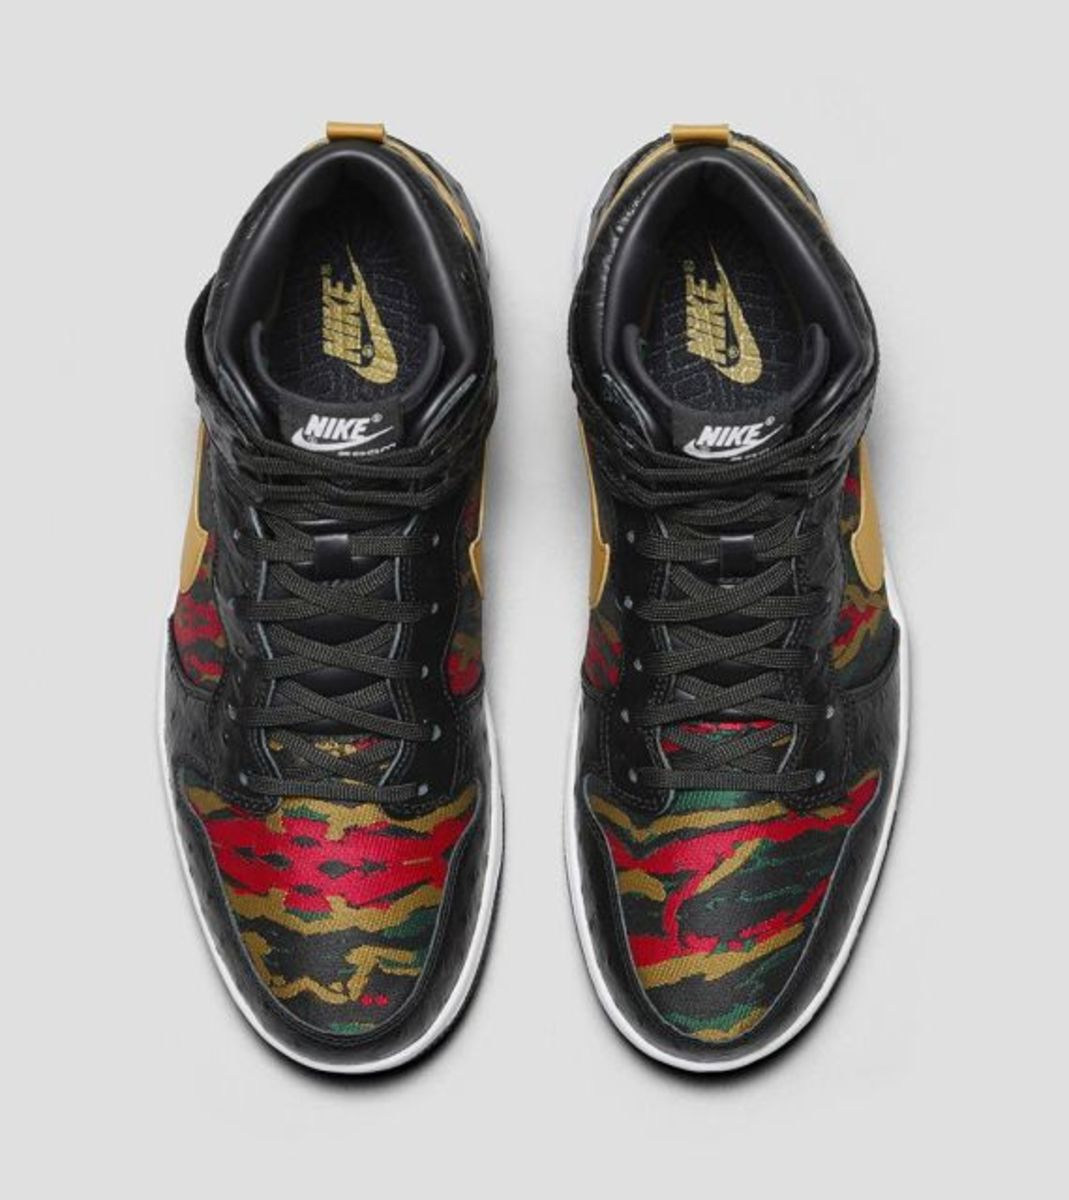 nike-dunk-high-cmft-prm-black-flat-gold-release-info-03